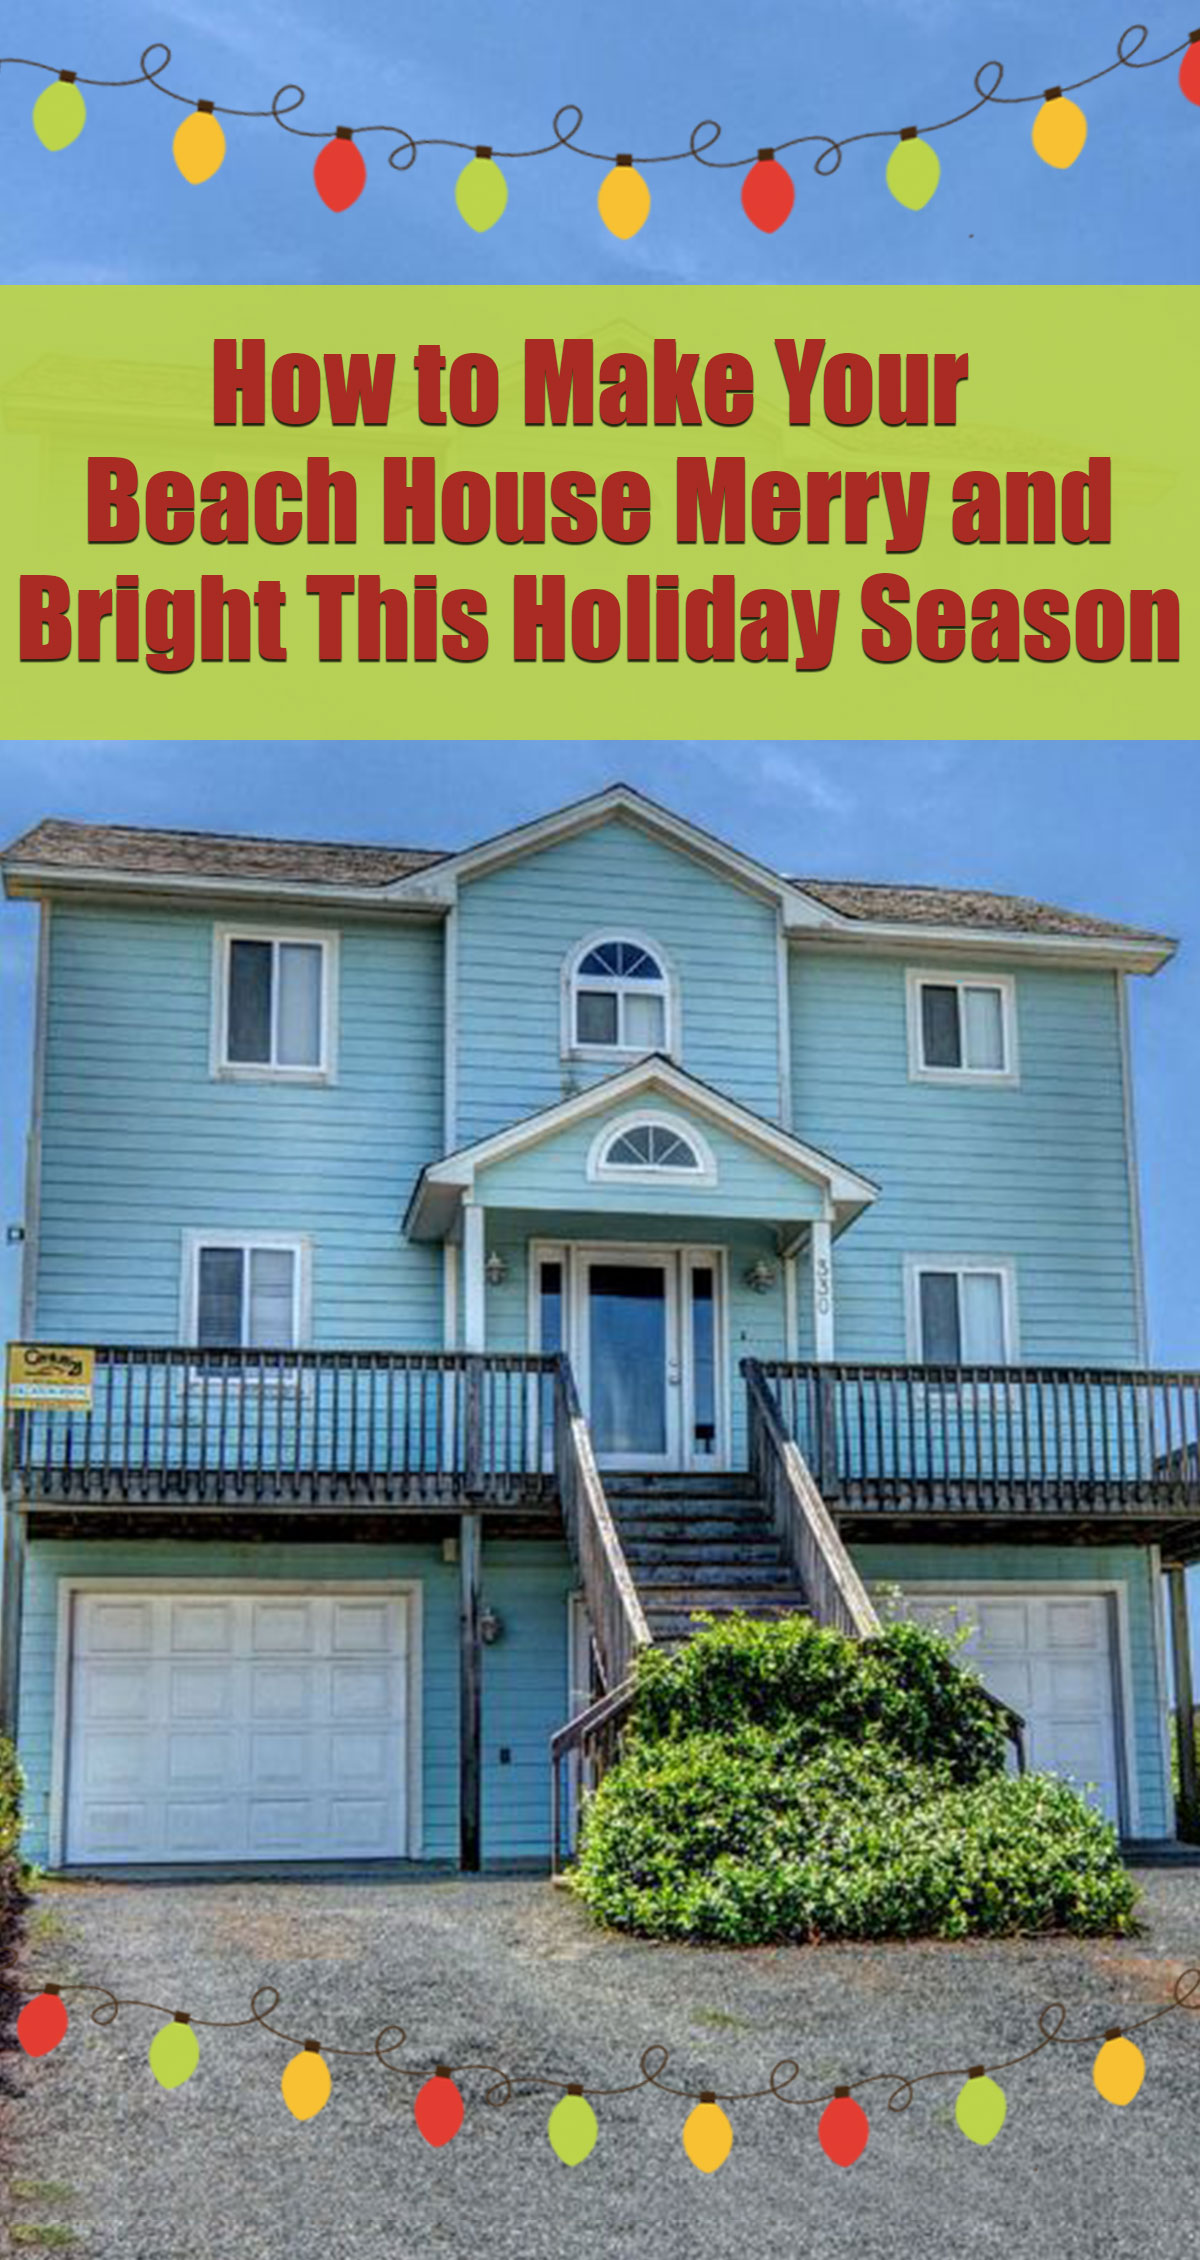 How to Make Your Beach House Merry and Bright This Holiday Season Pin